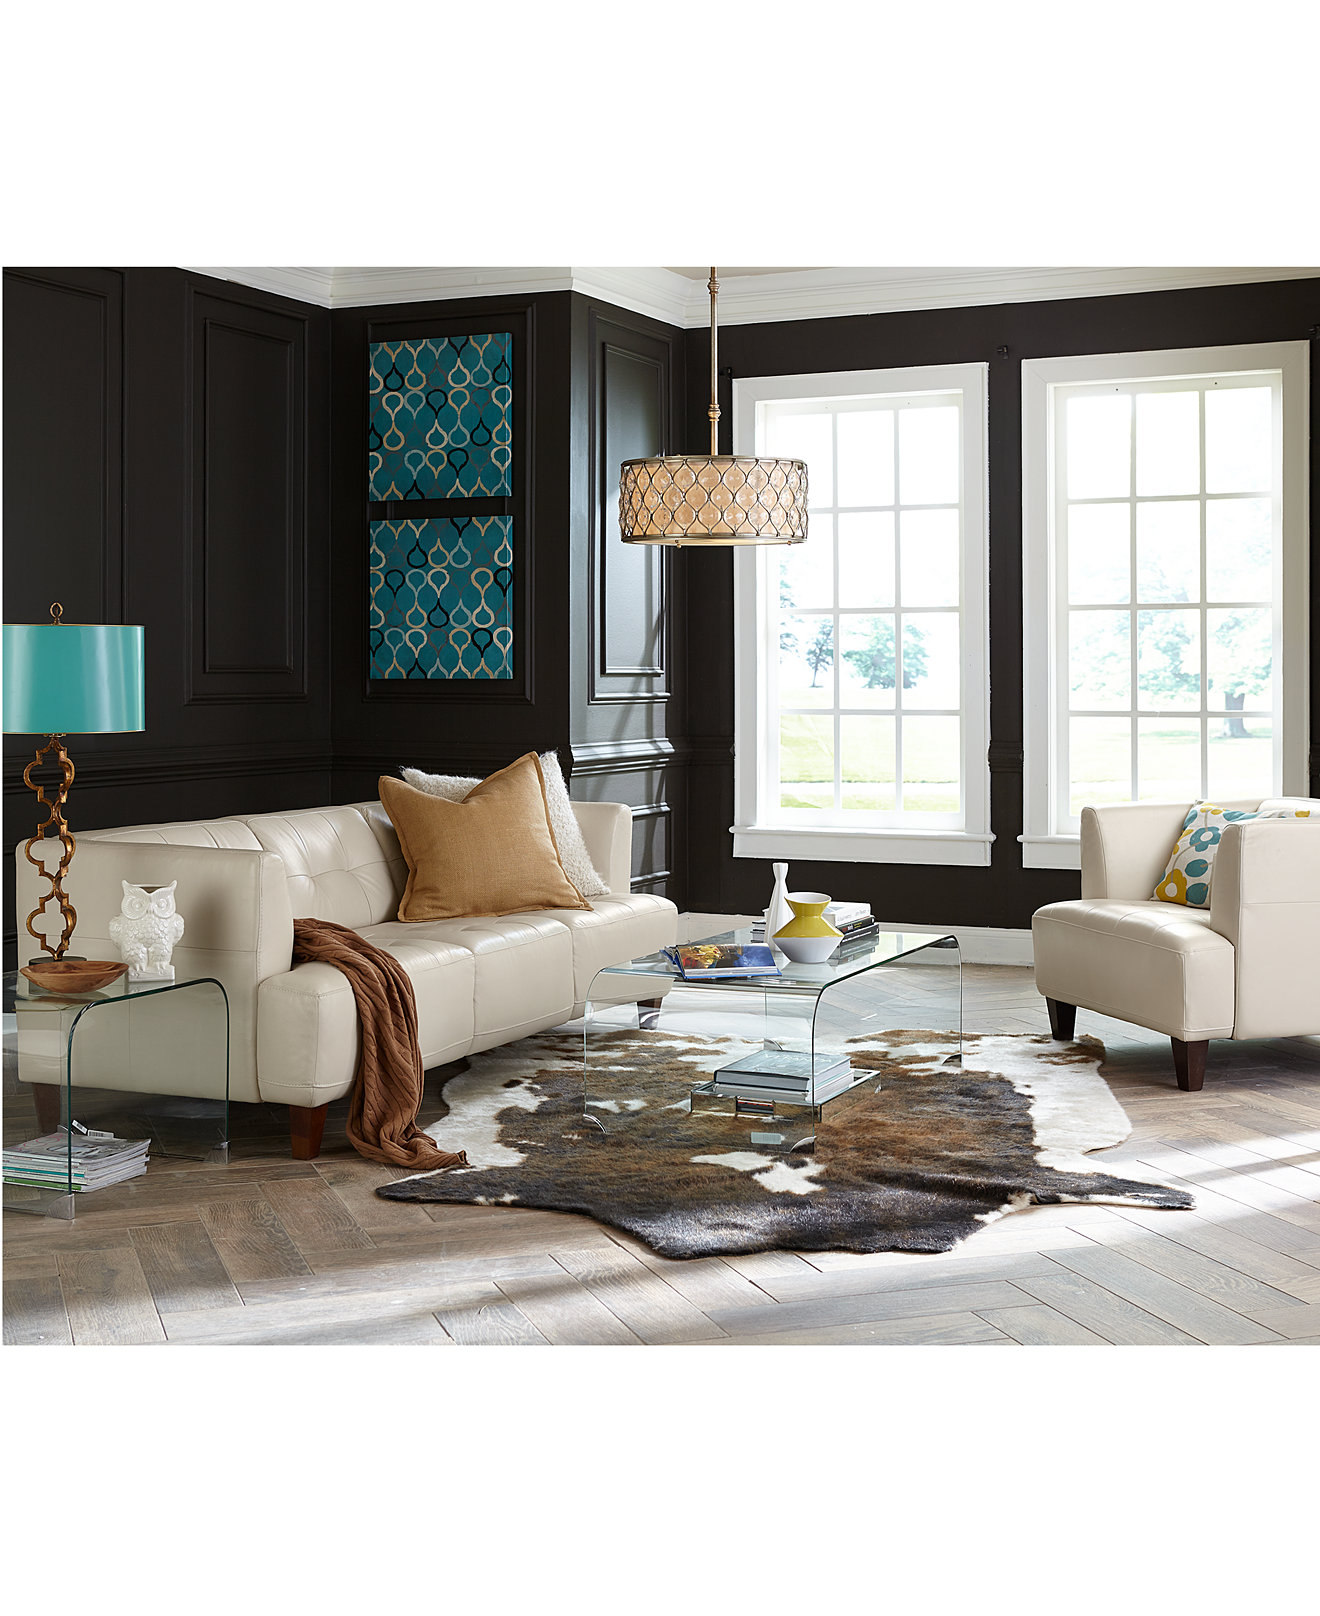 Living Room Furniture Sets - Macy\'s